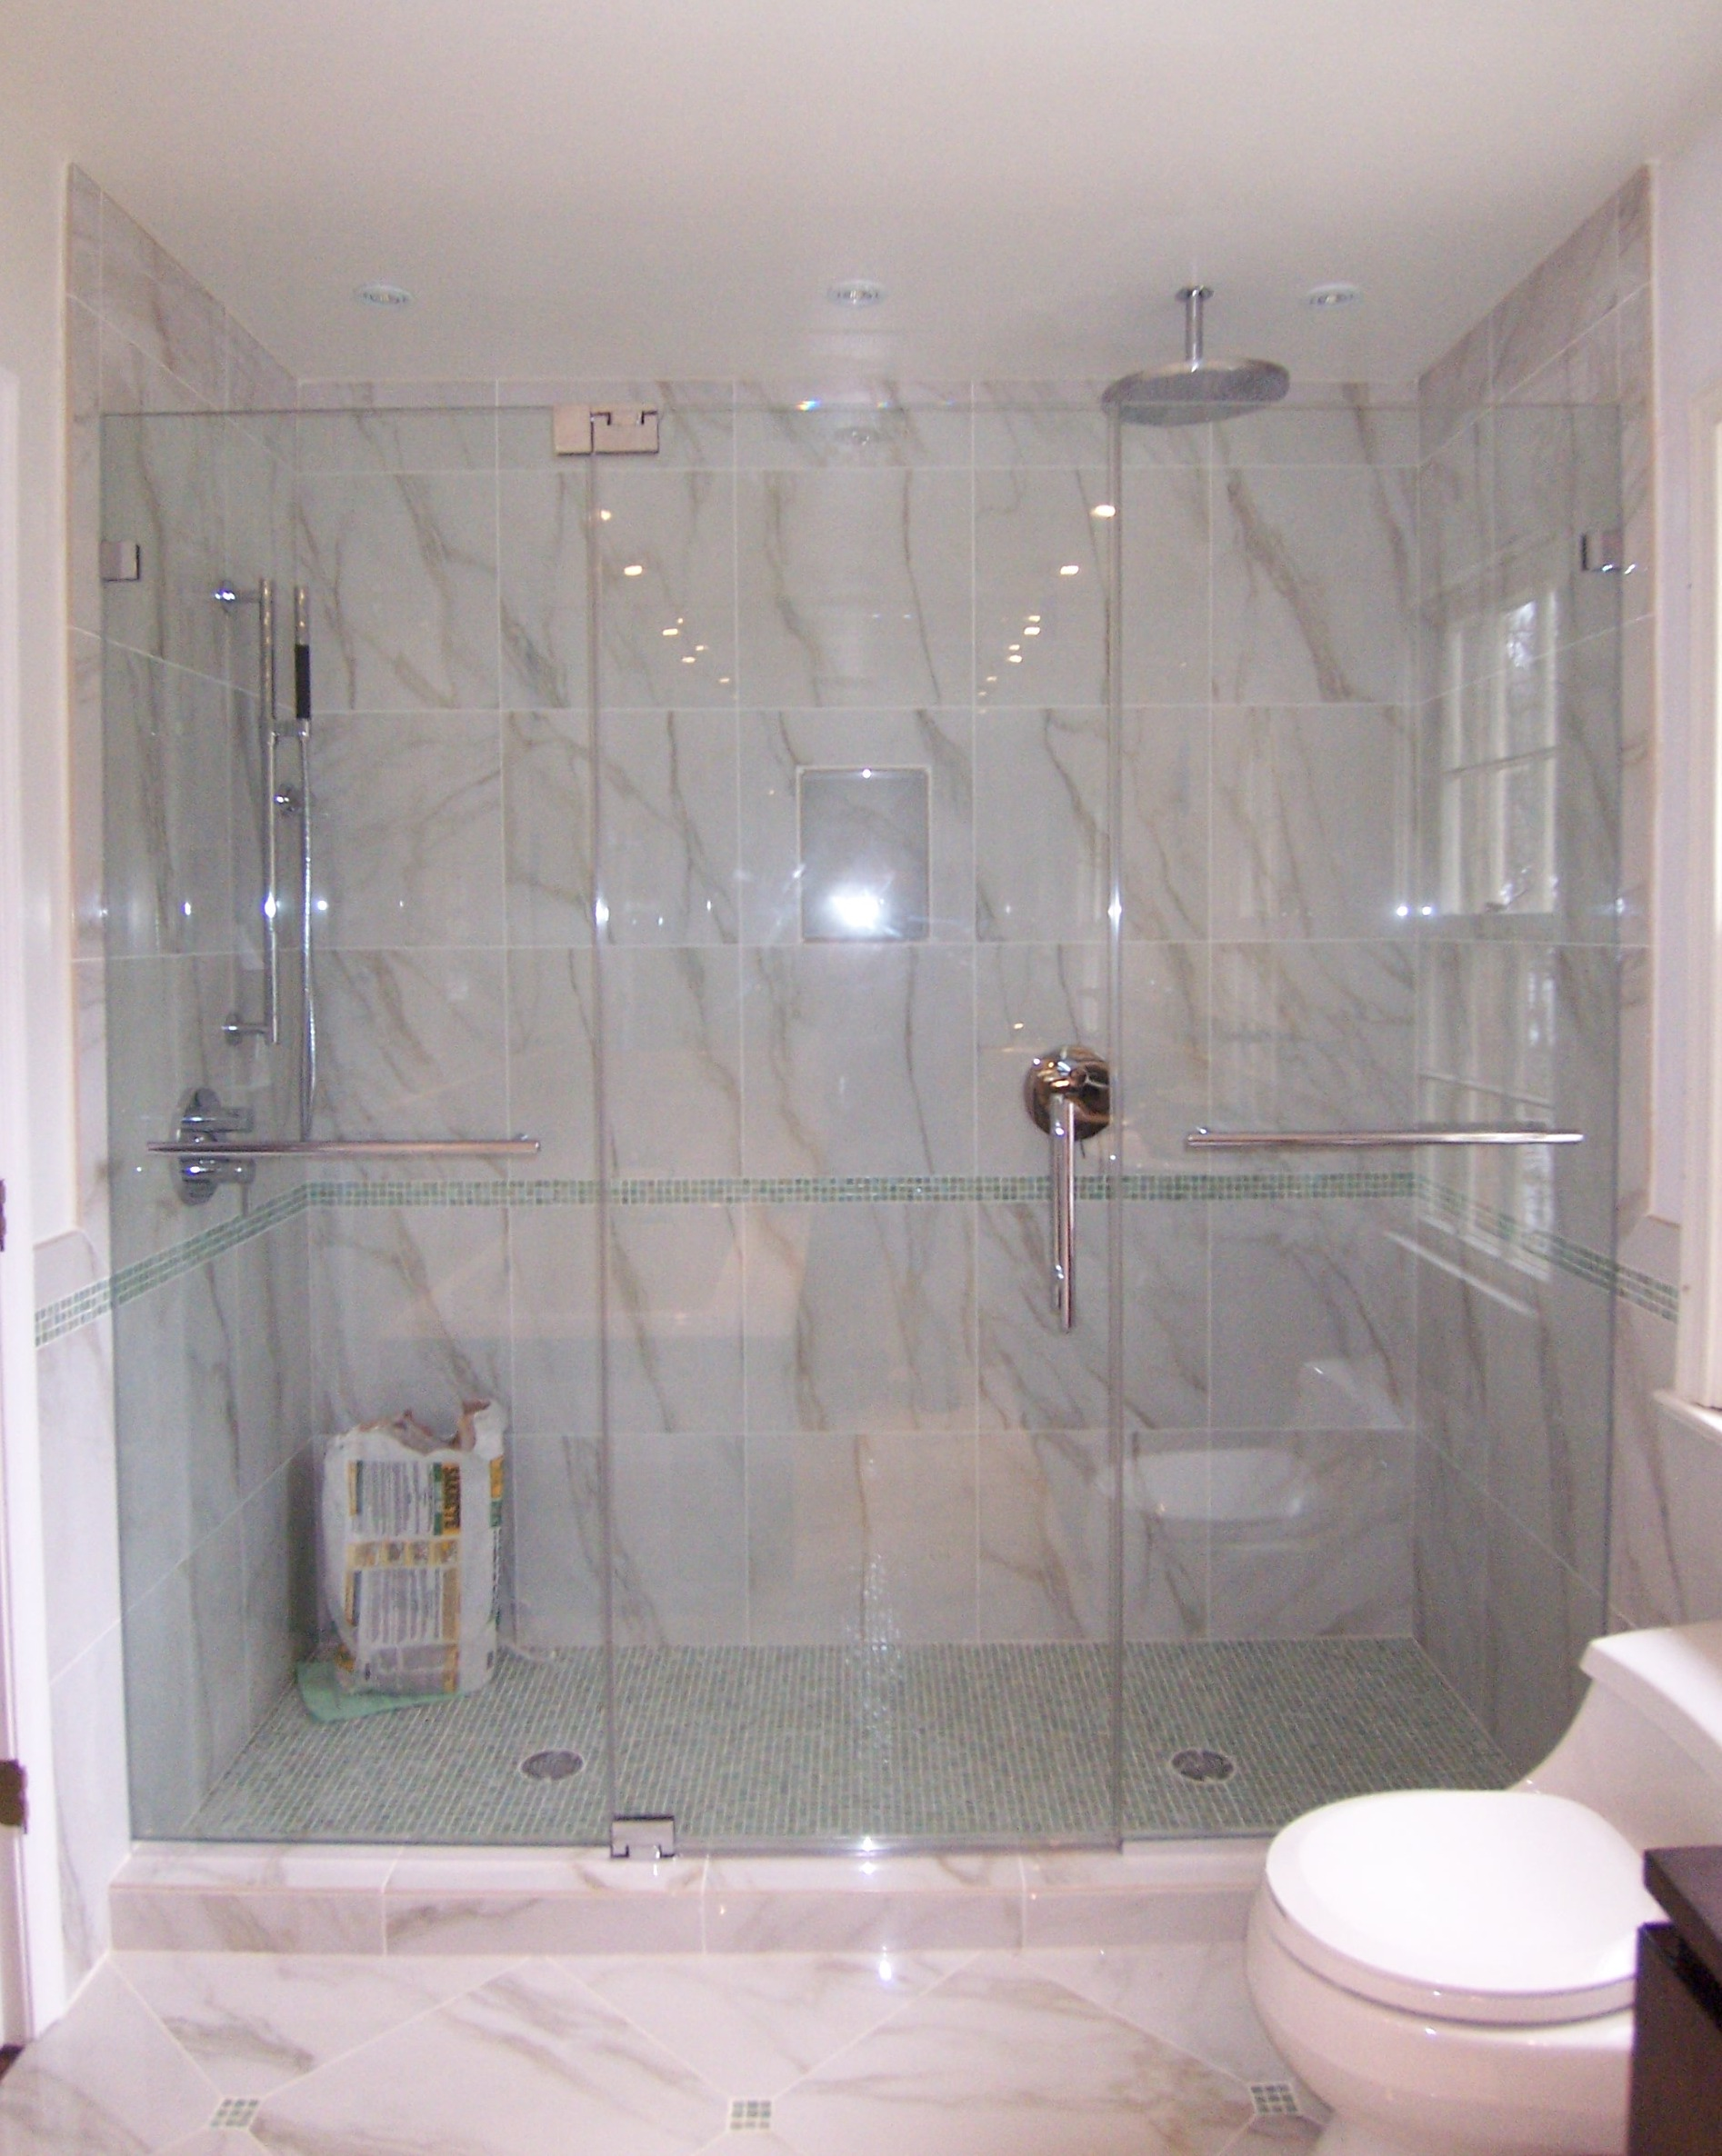 Panel door panel shower door king shower door installations frameless panel door panel half inch glass 3 planetlyrics Gallery